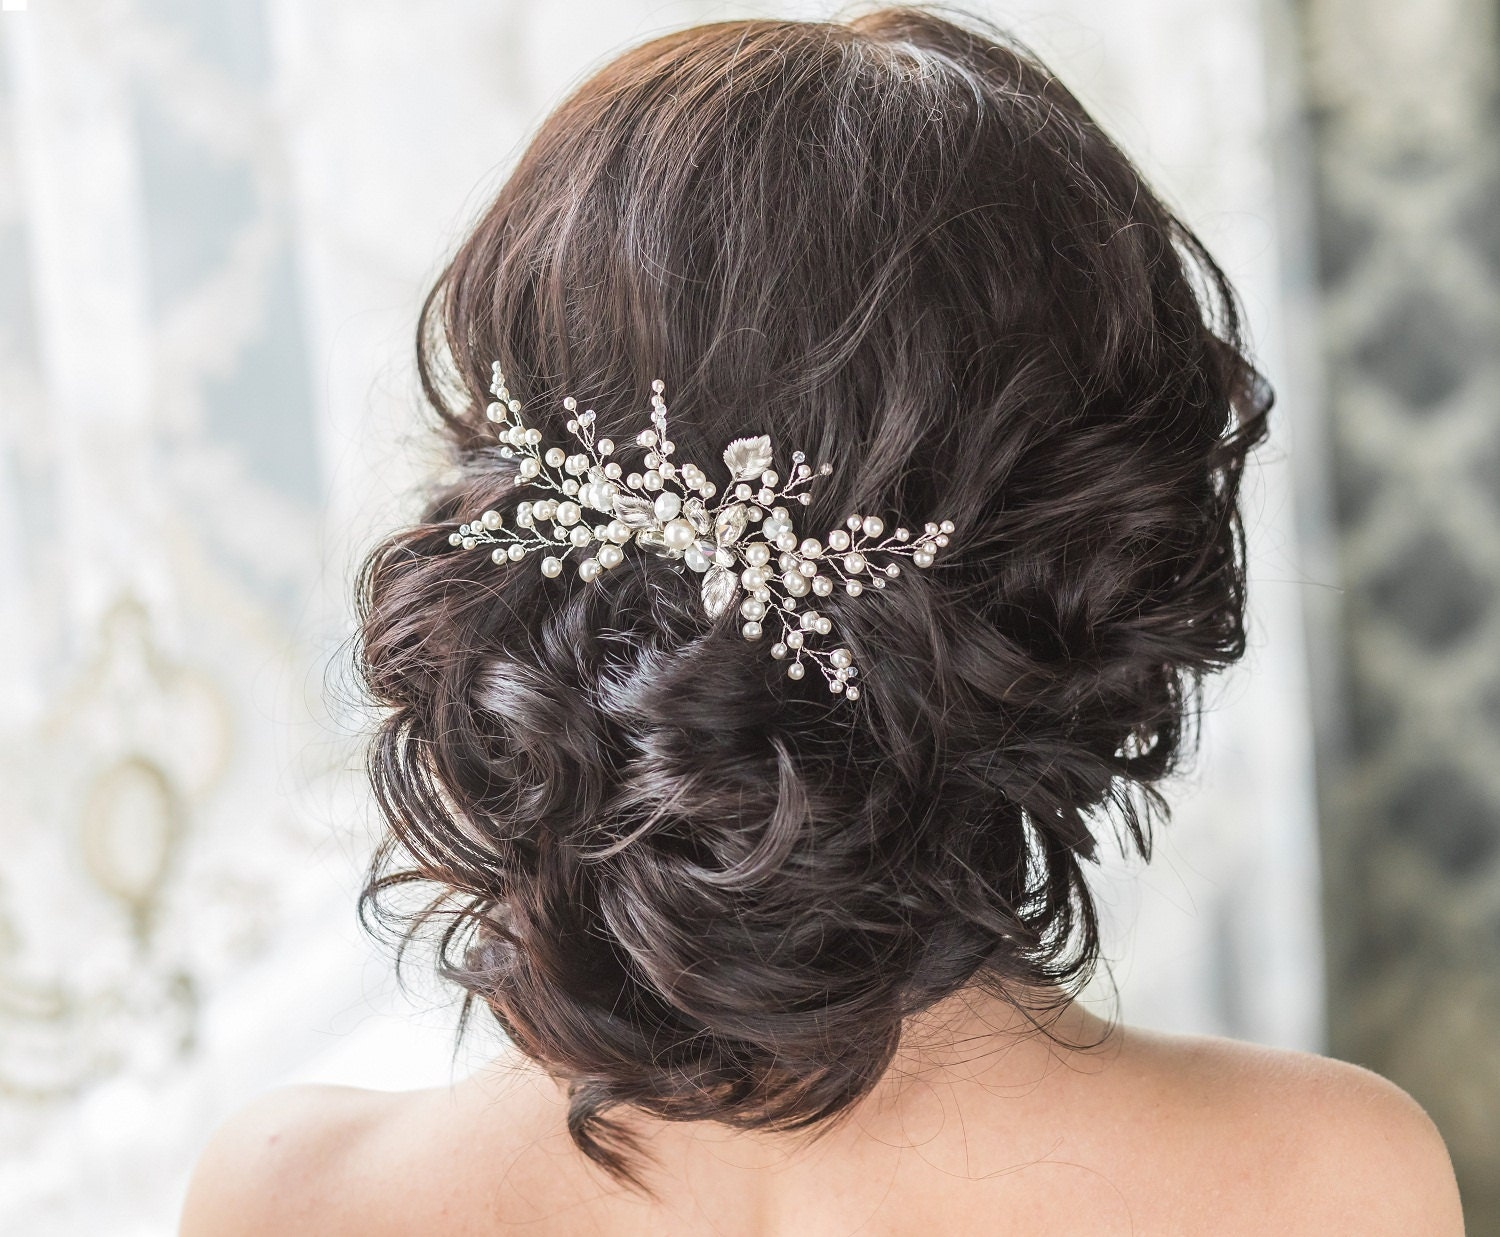 This beautiful flower bridal hair comb is accented with Swarovski crystals and pearls. The leaves are made ​​of brass coated with matte white gold or gold. The